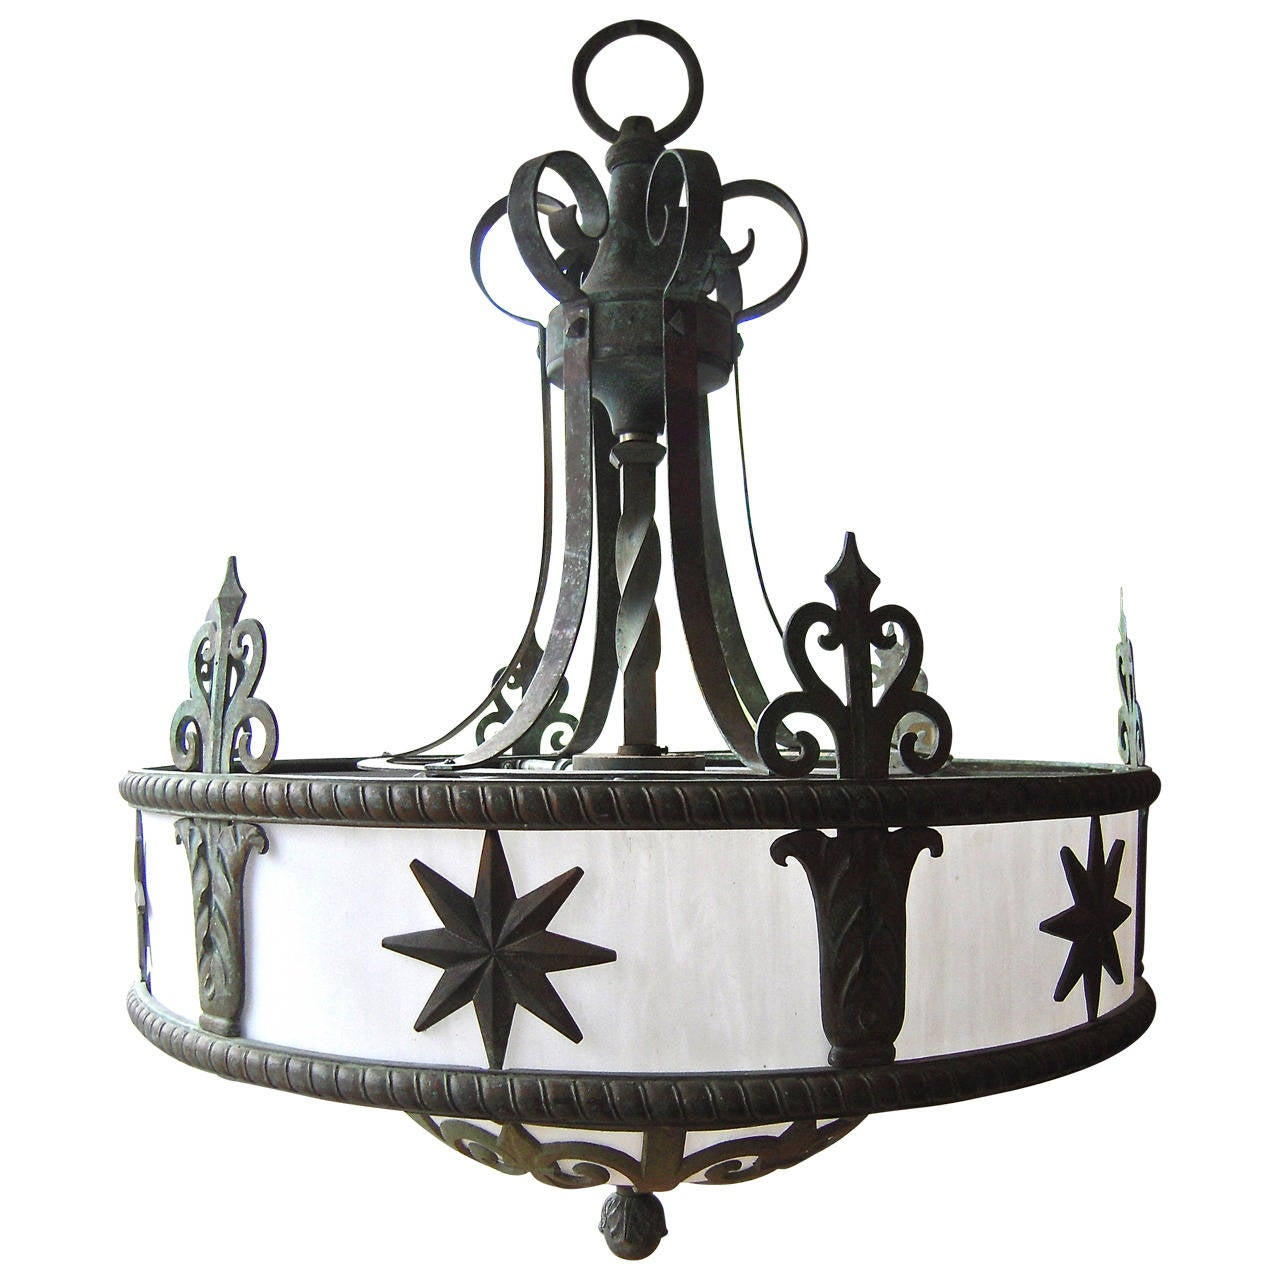 Art deco period chandelier from a new york theater at 1stdibs for Art deco period